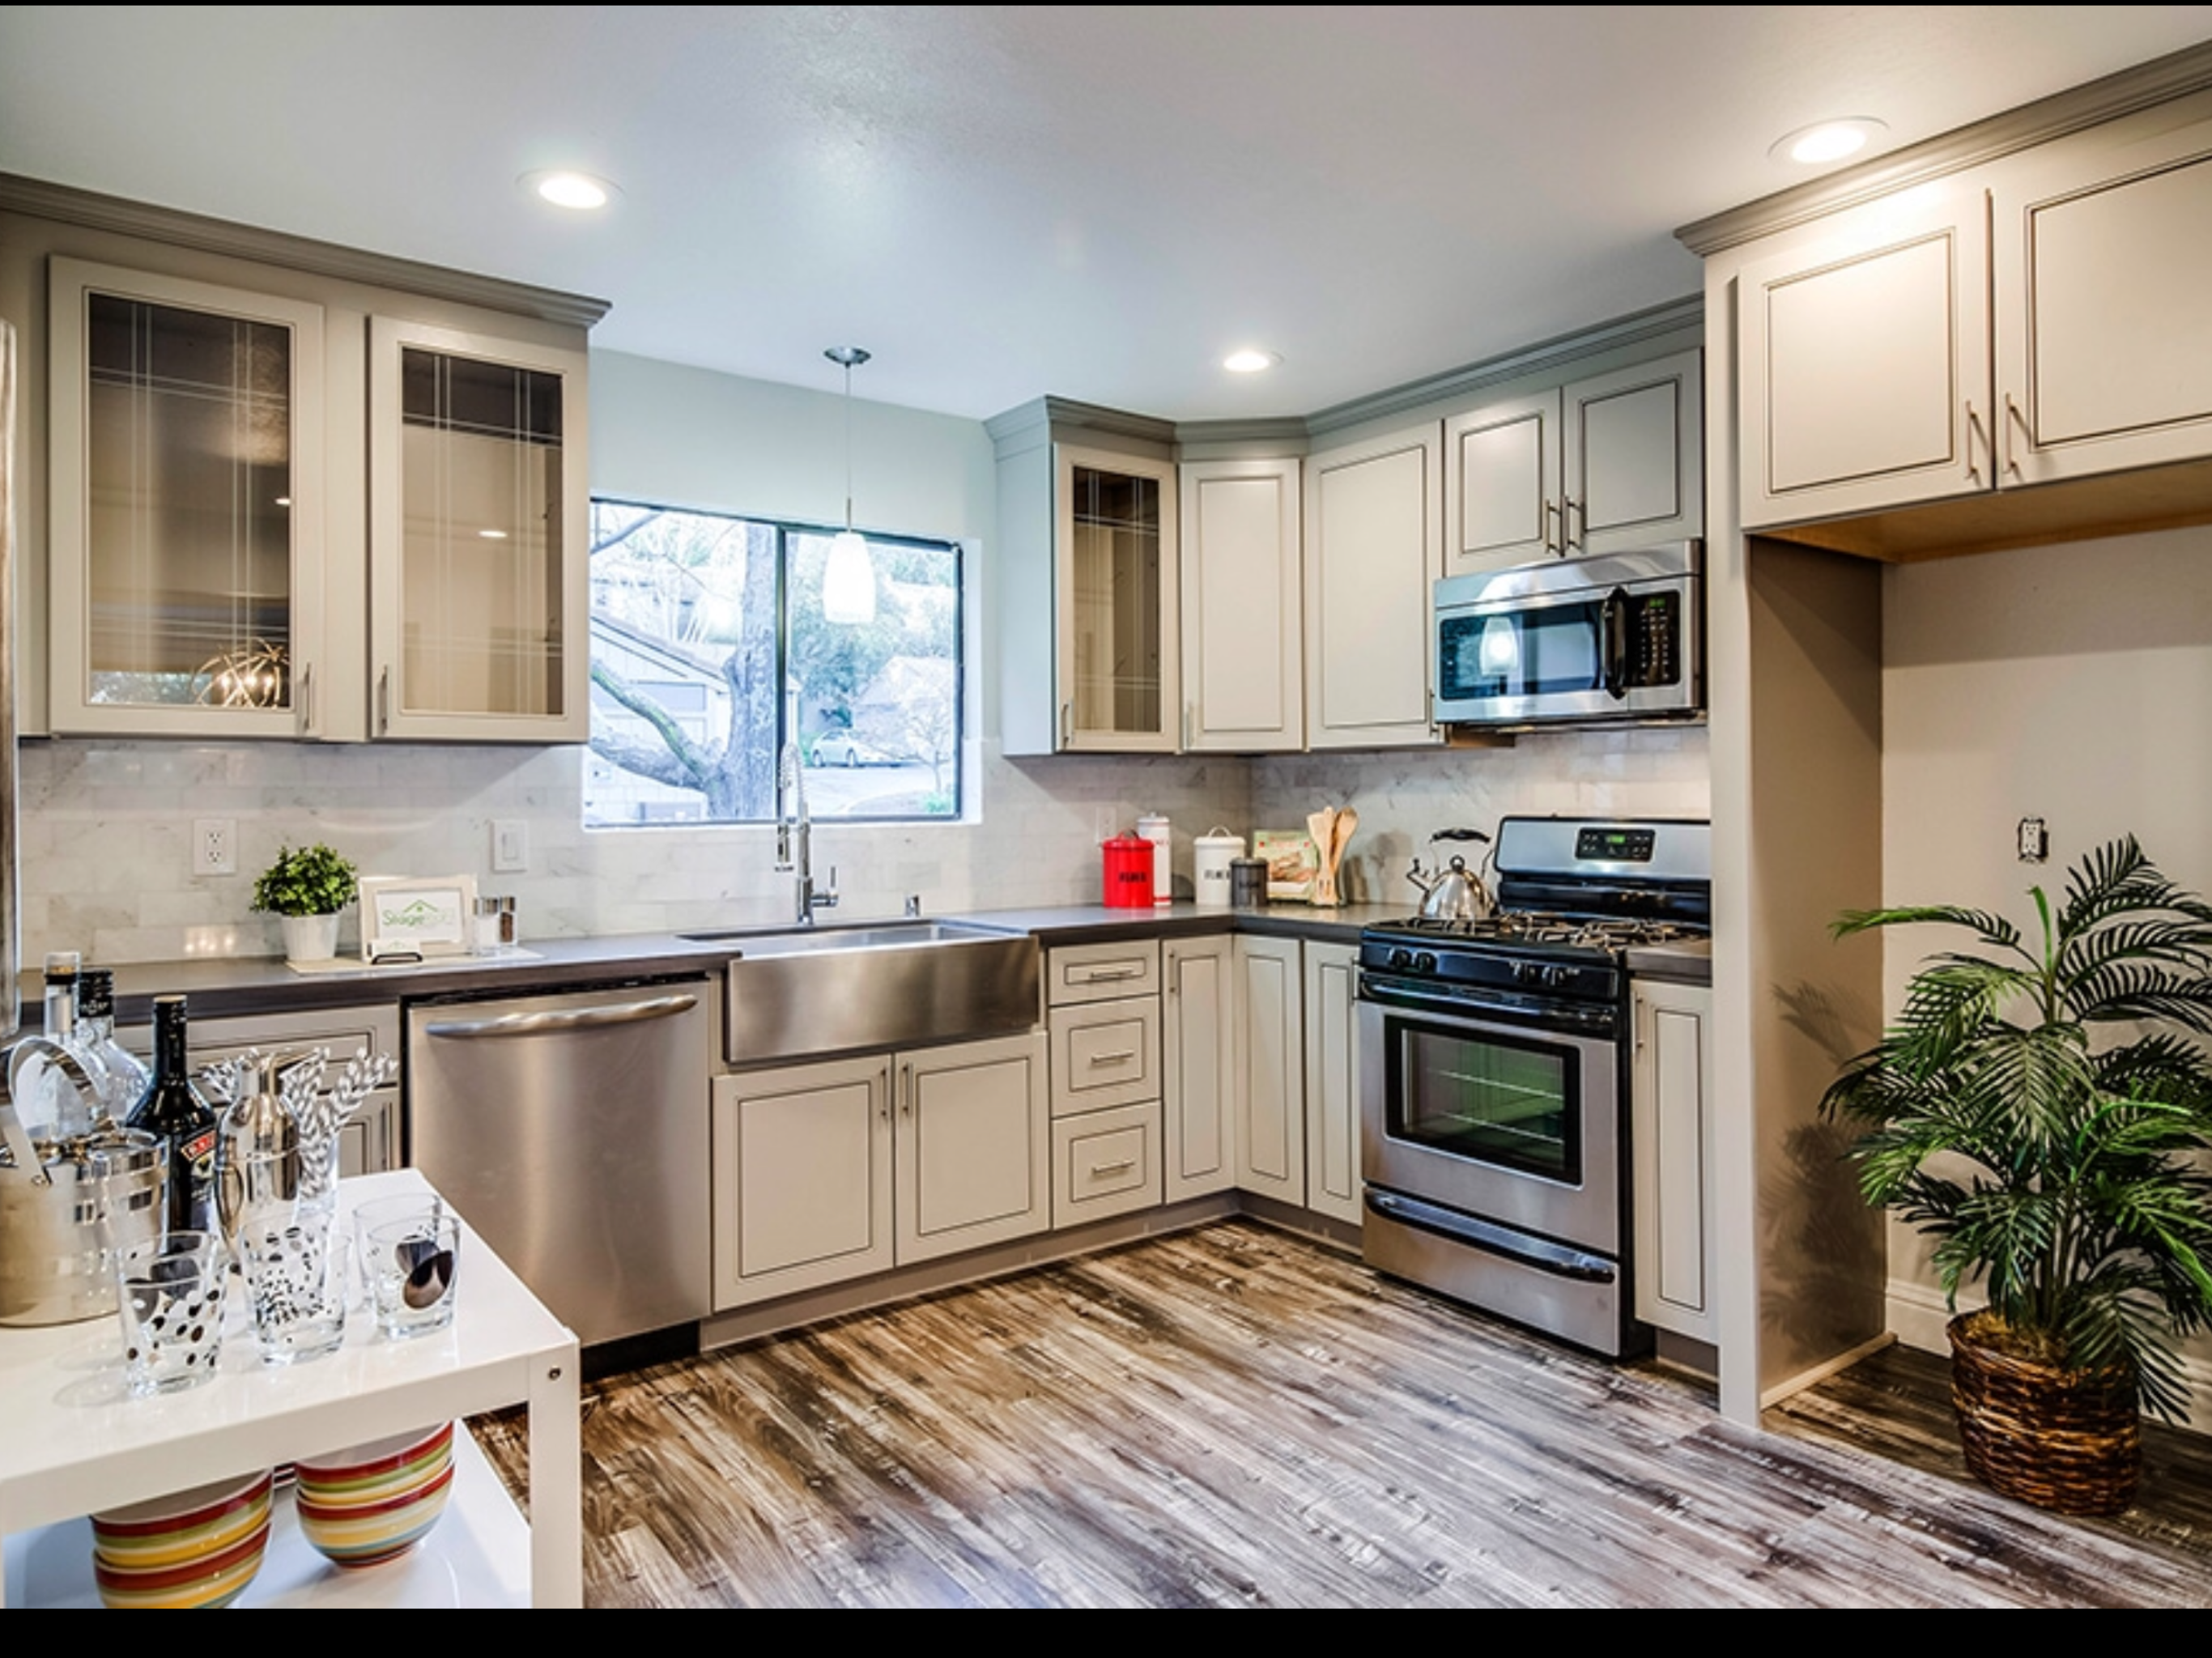 Idea by abc kitchens on Greige Maple Cabinets | Kitchen ...